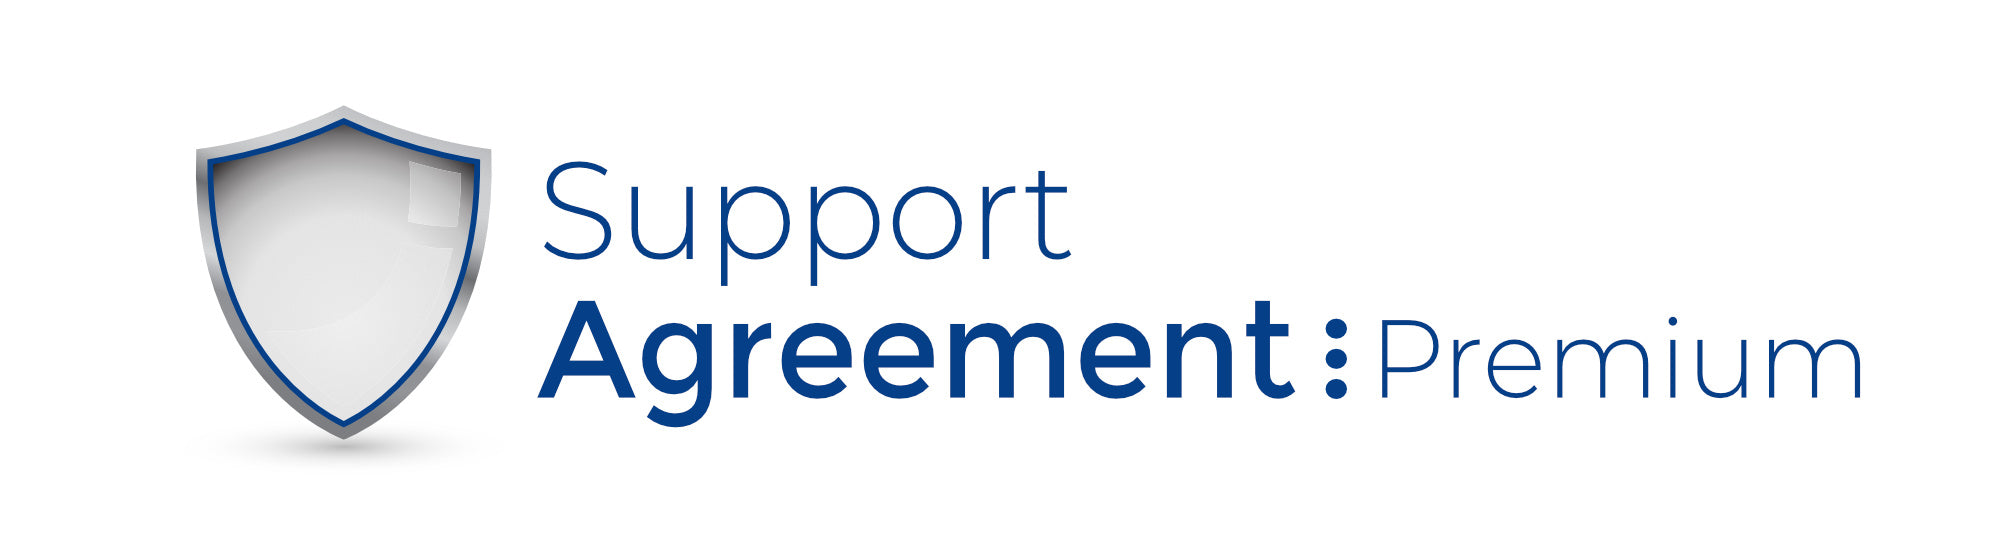 Support Agreement Premium - (120 Programming Changes Per Year) - Commtel Shop